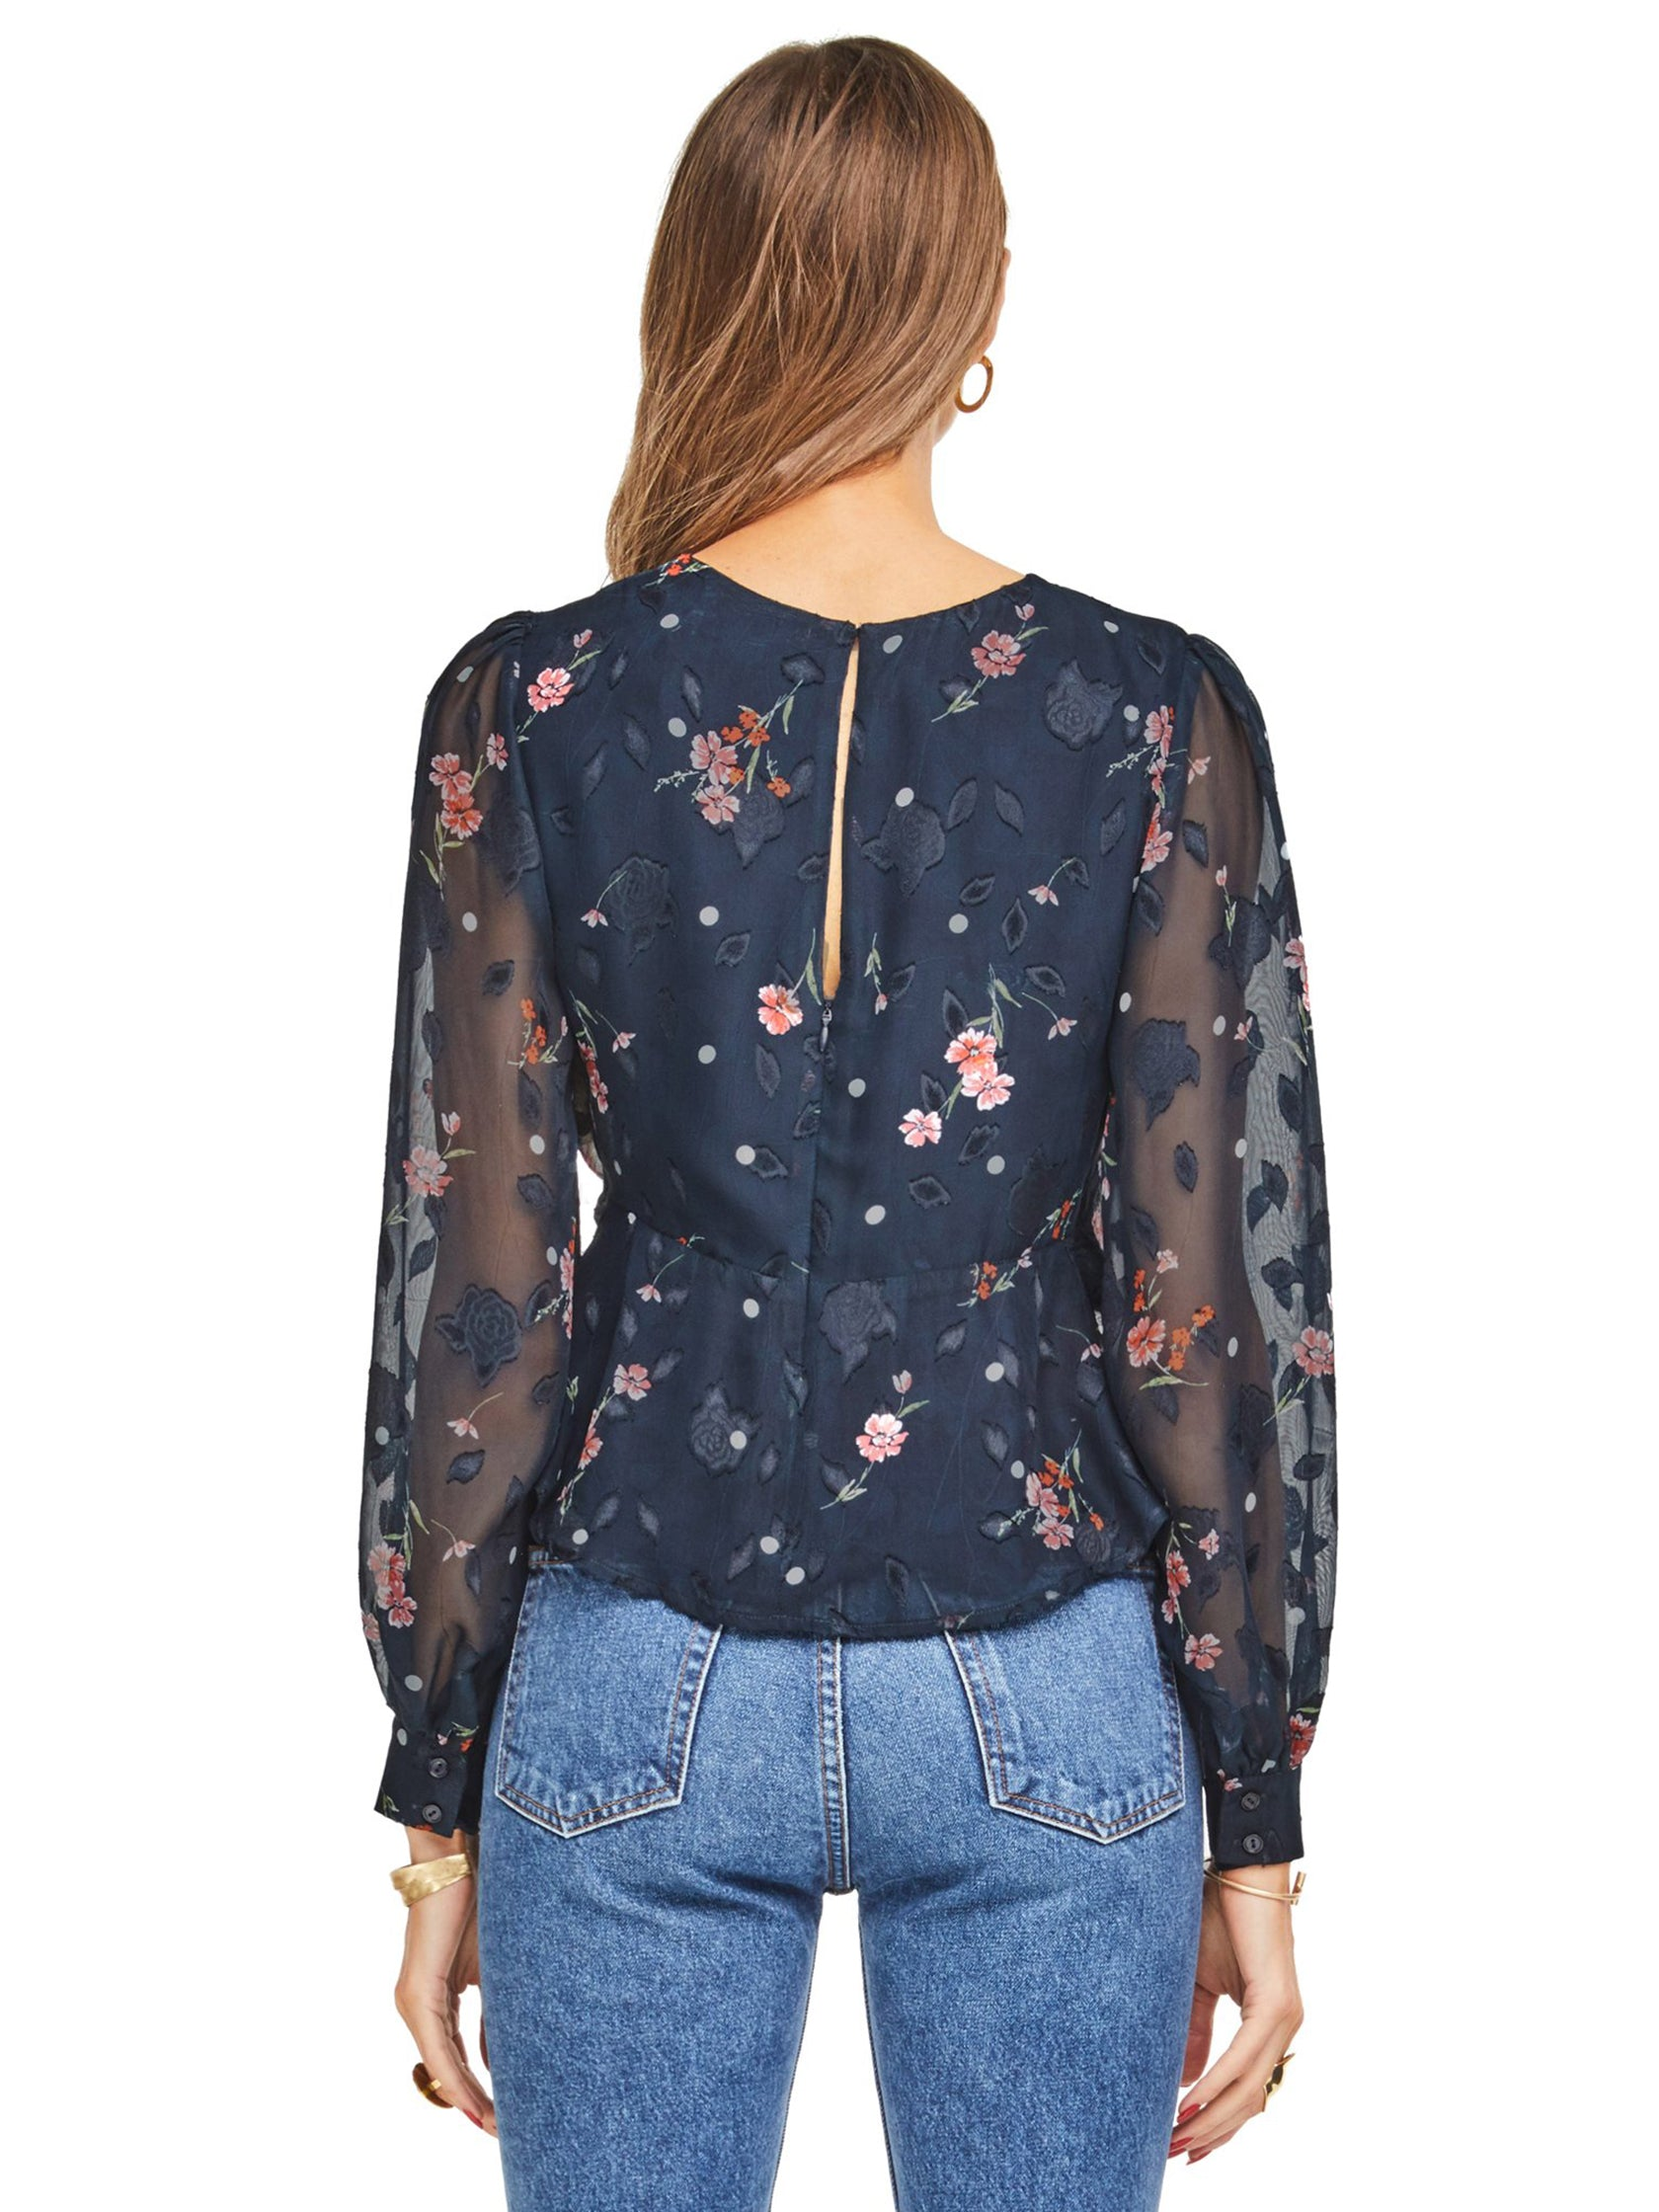 Women outfit in a top rental from ASTR called Paisley Top